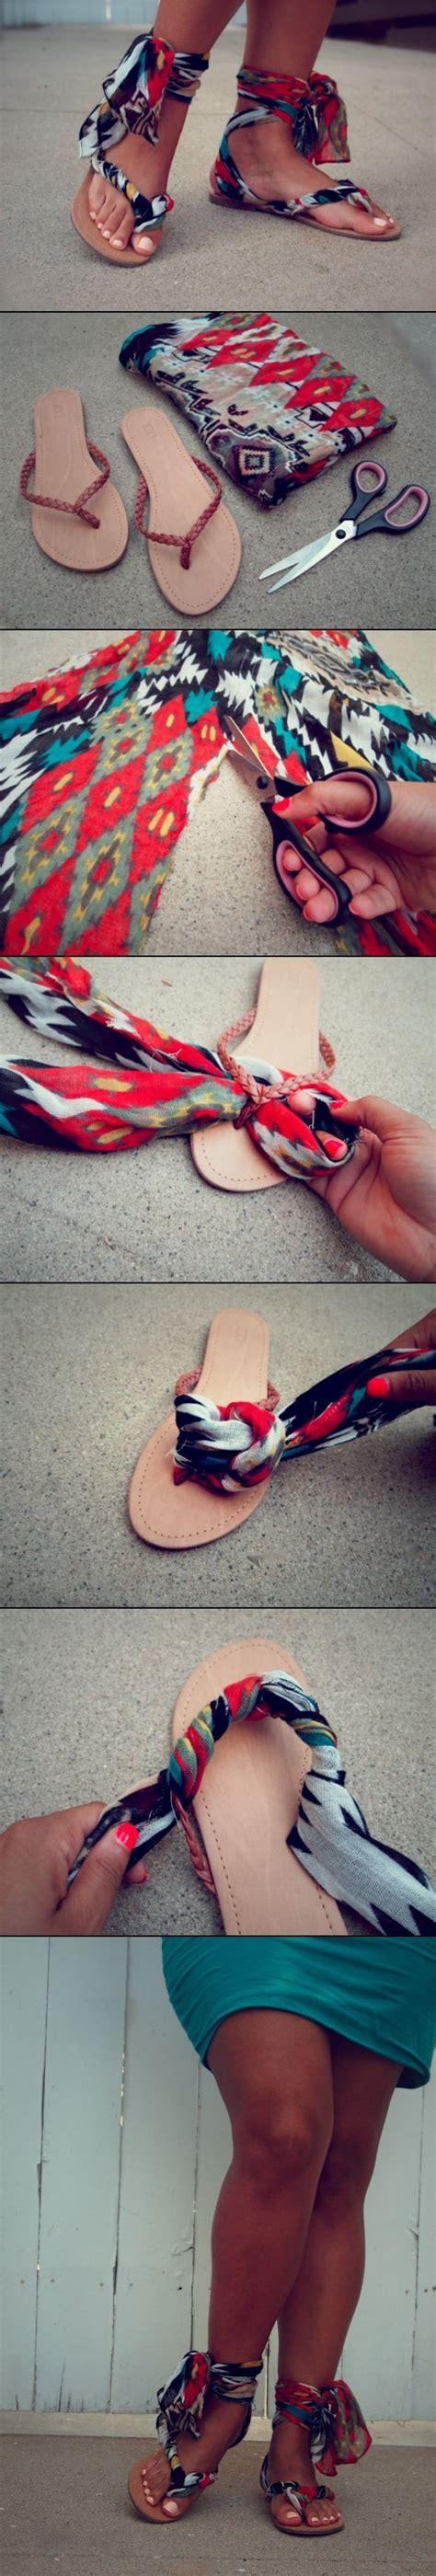 diy gladiator sandals 104 best images about diy wearable ideas designs on